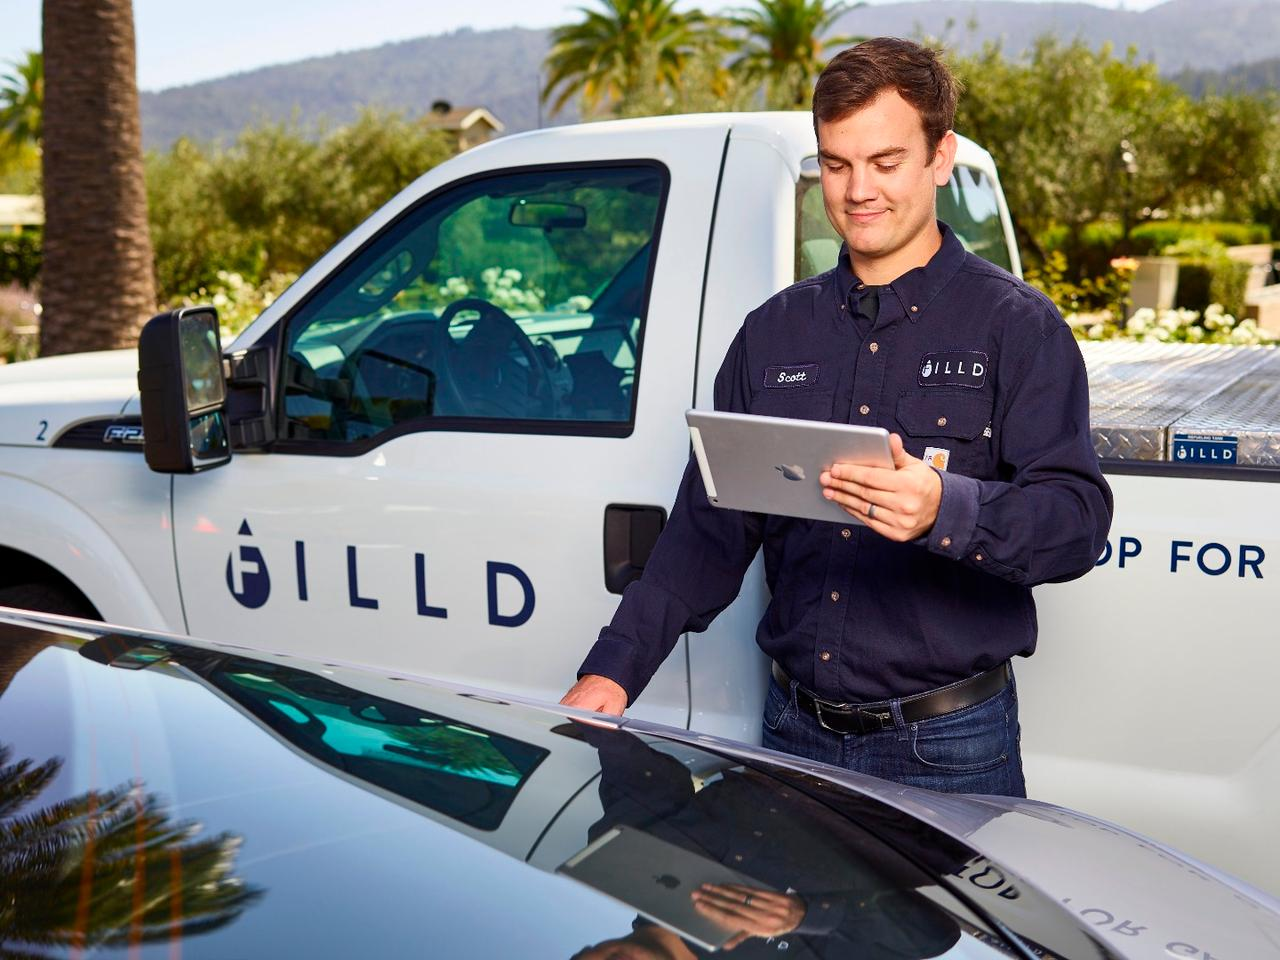 Filld for Bentley is being provided in partnership with US startup Filld